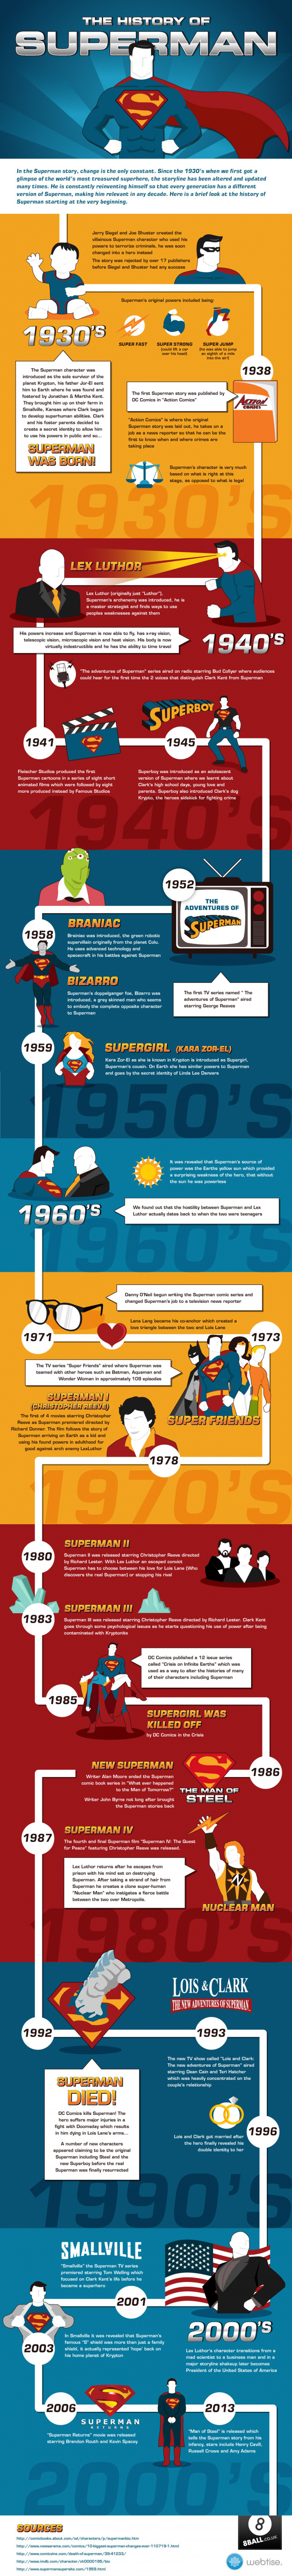 The History of Superman Infographic